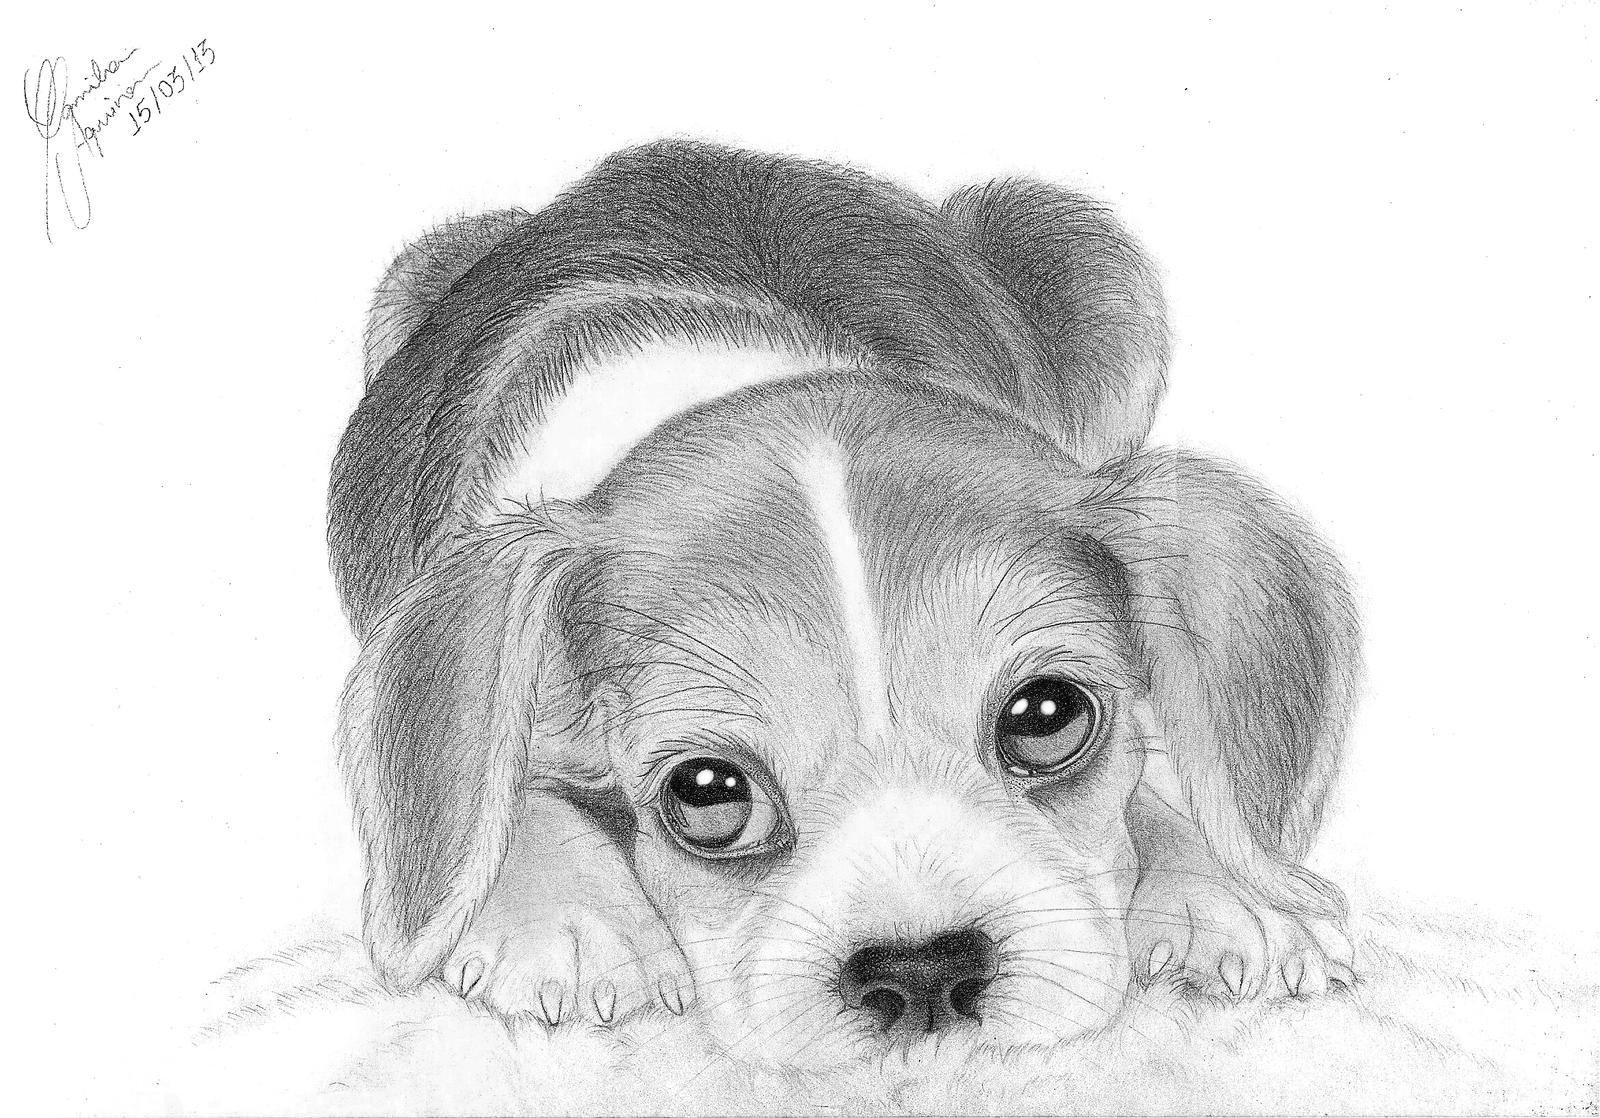 beagle drawing the beagle drawing by genevieve schlueter beagle drawing